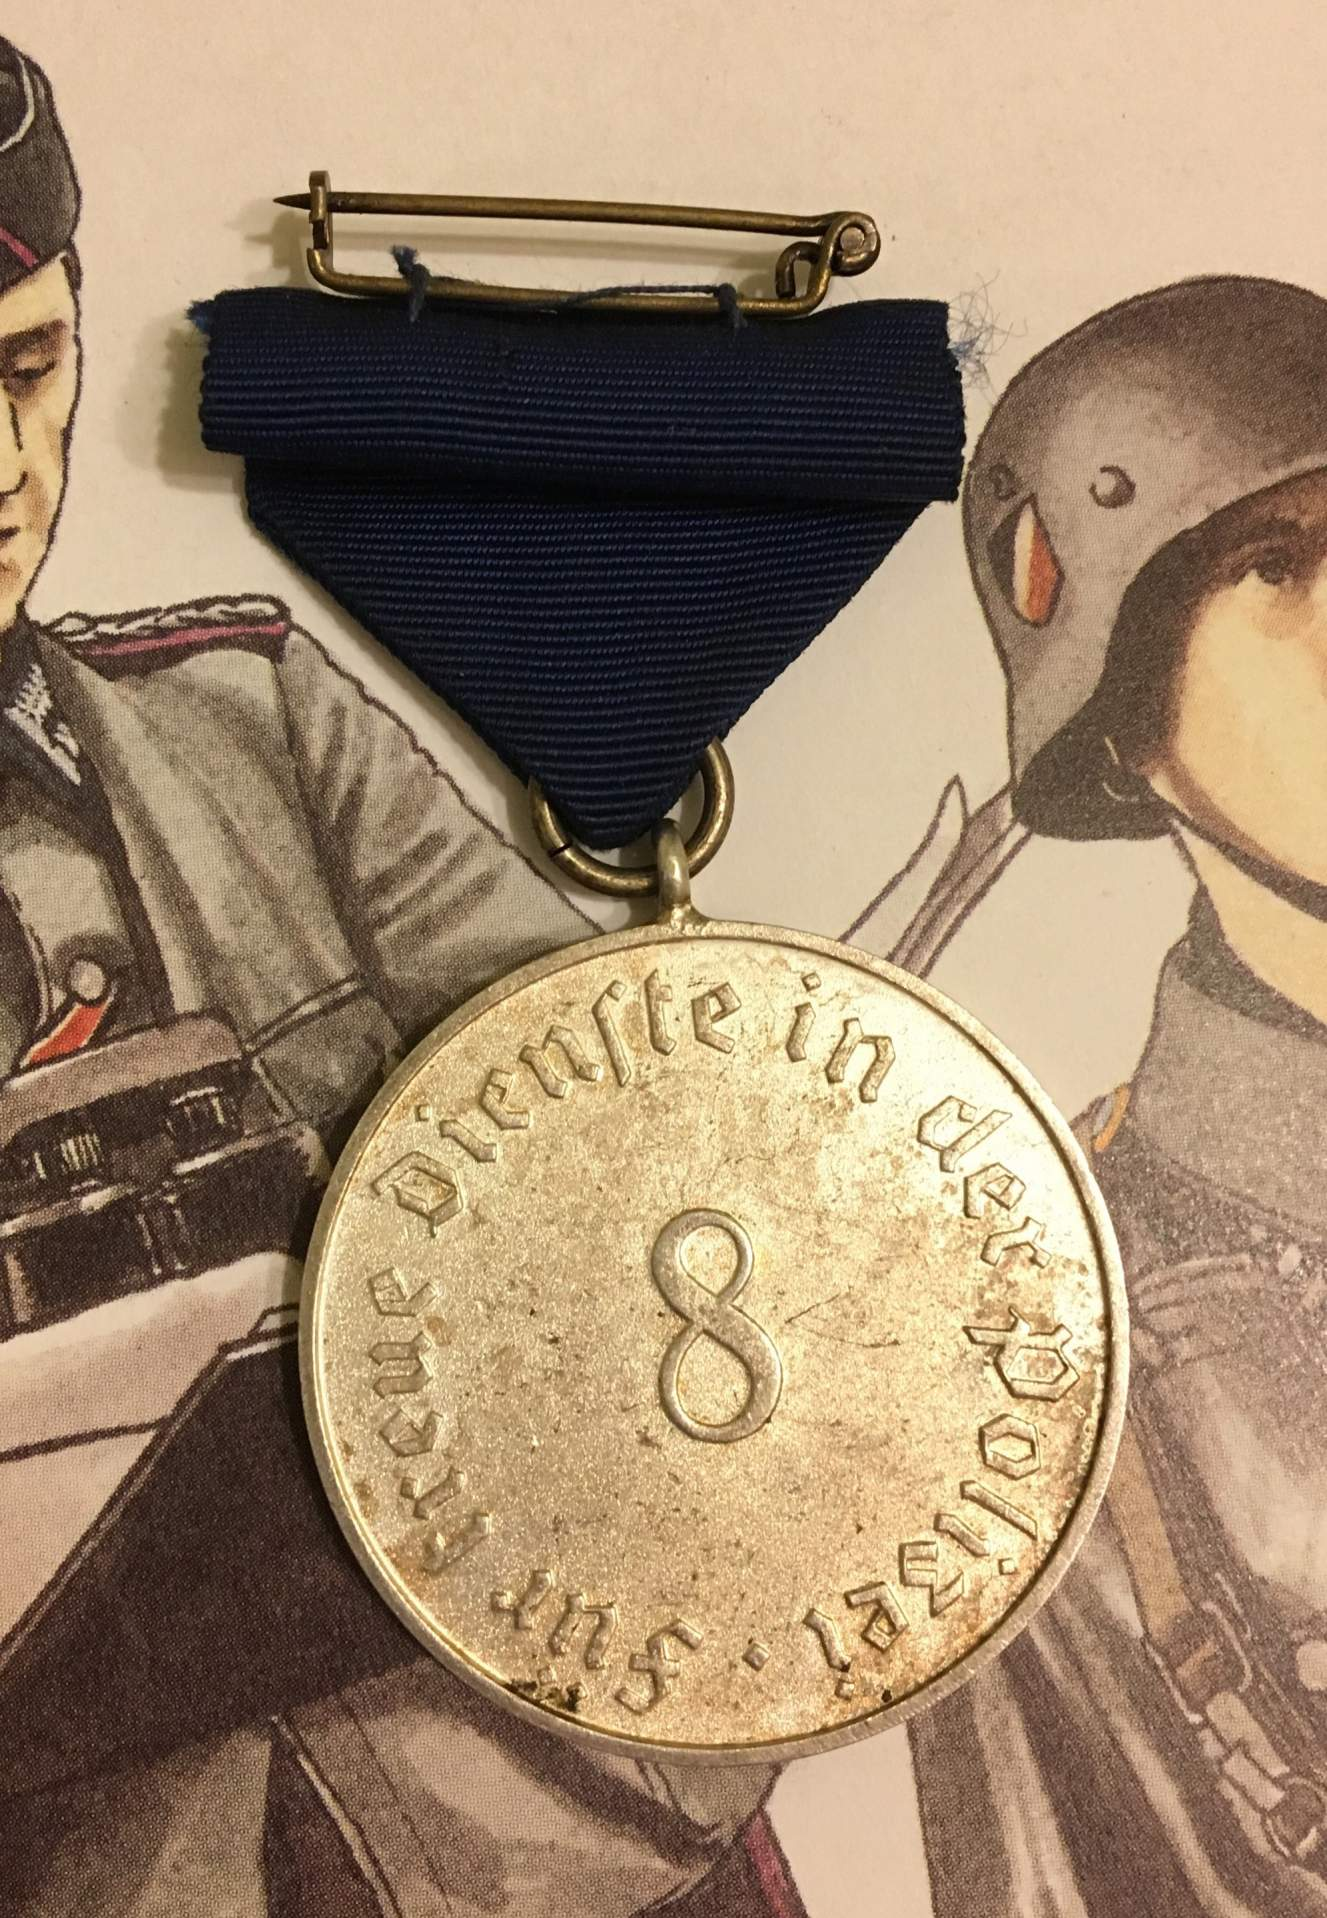 Year Long Nature Study Reminders: POLIZEI EIGHT YEAR LONG SERVICE AWARD, 1938. (Polizei